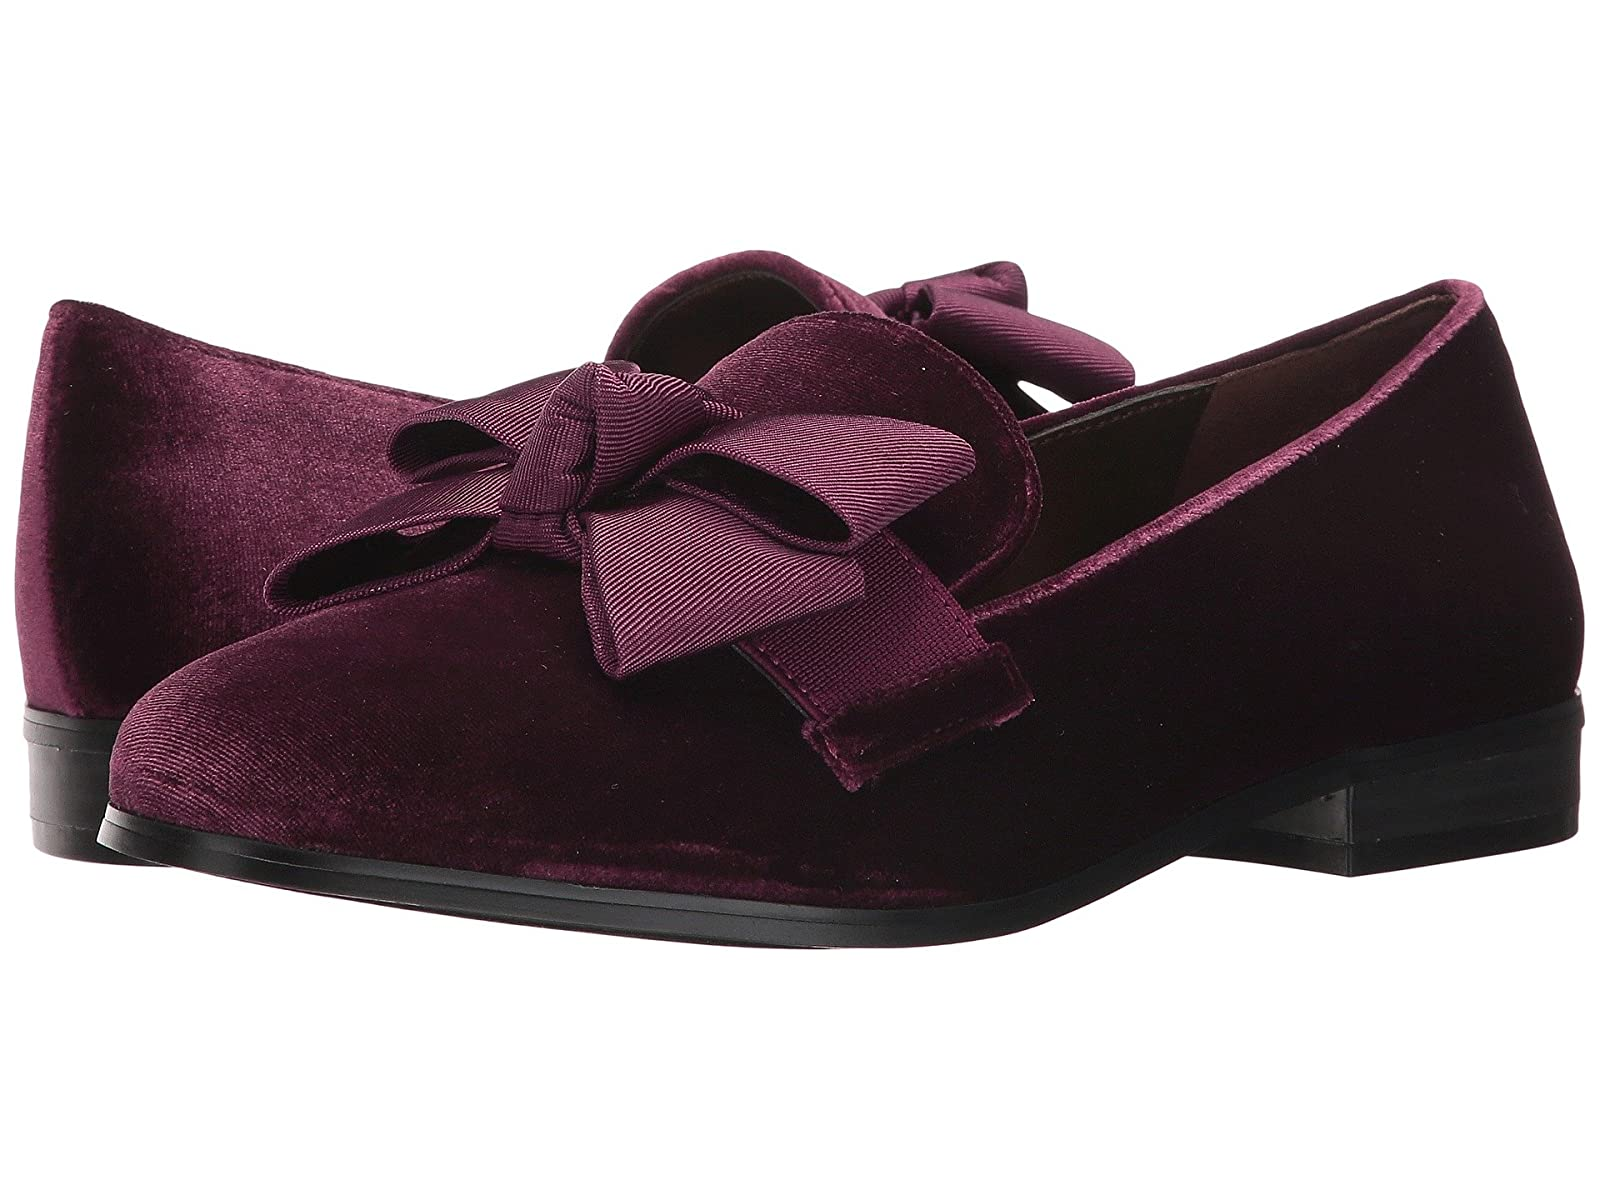 Bandolino LombCheap and distinctive eye-catching shoes